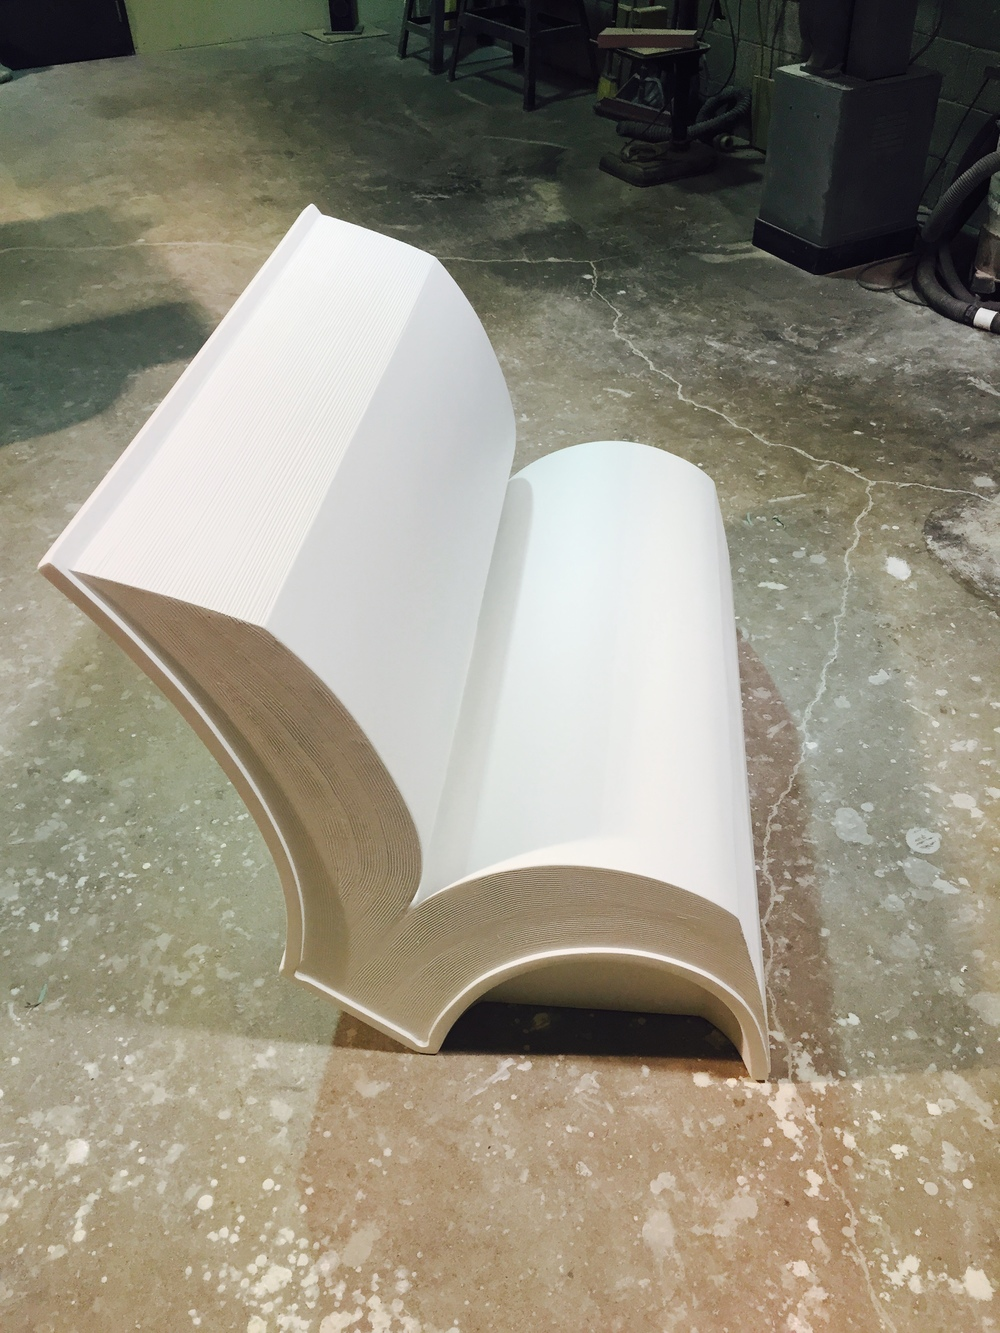 Finished Prototype fiberglass book bench